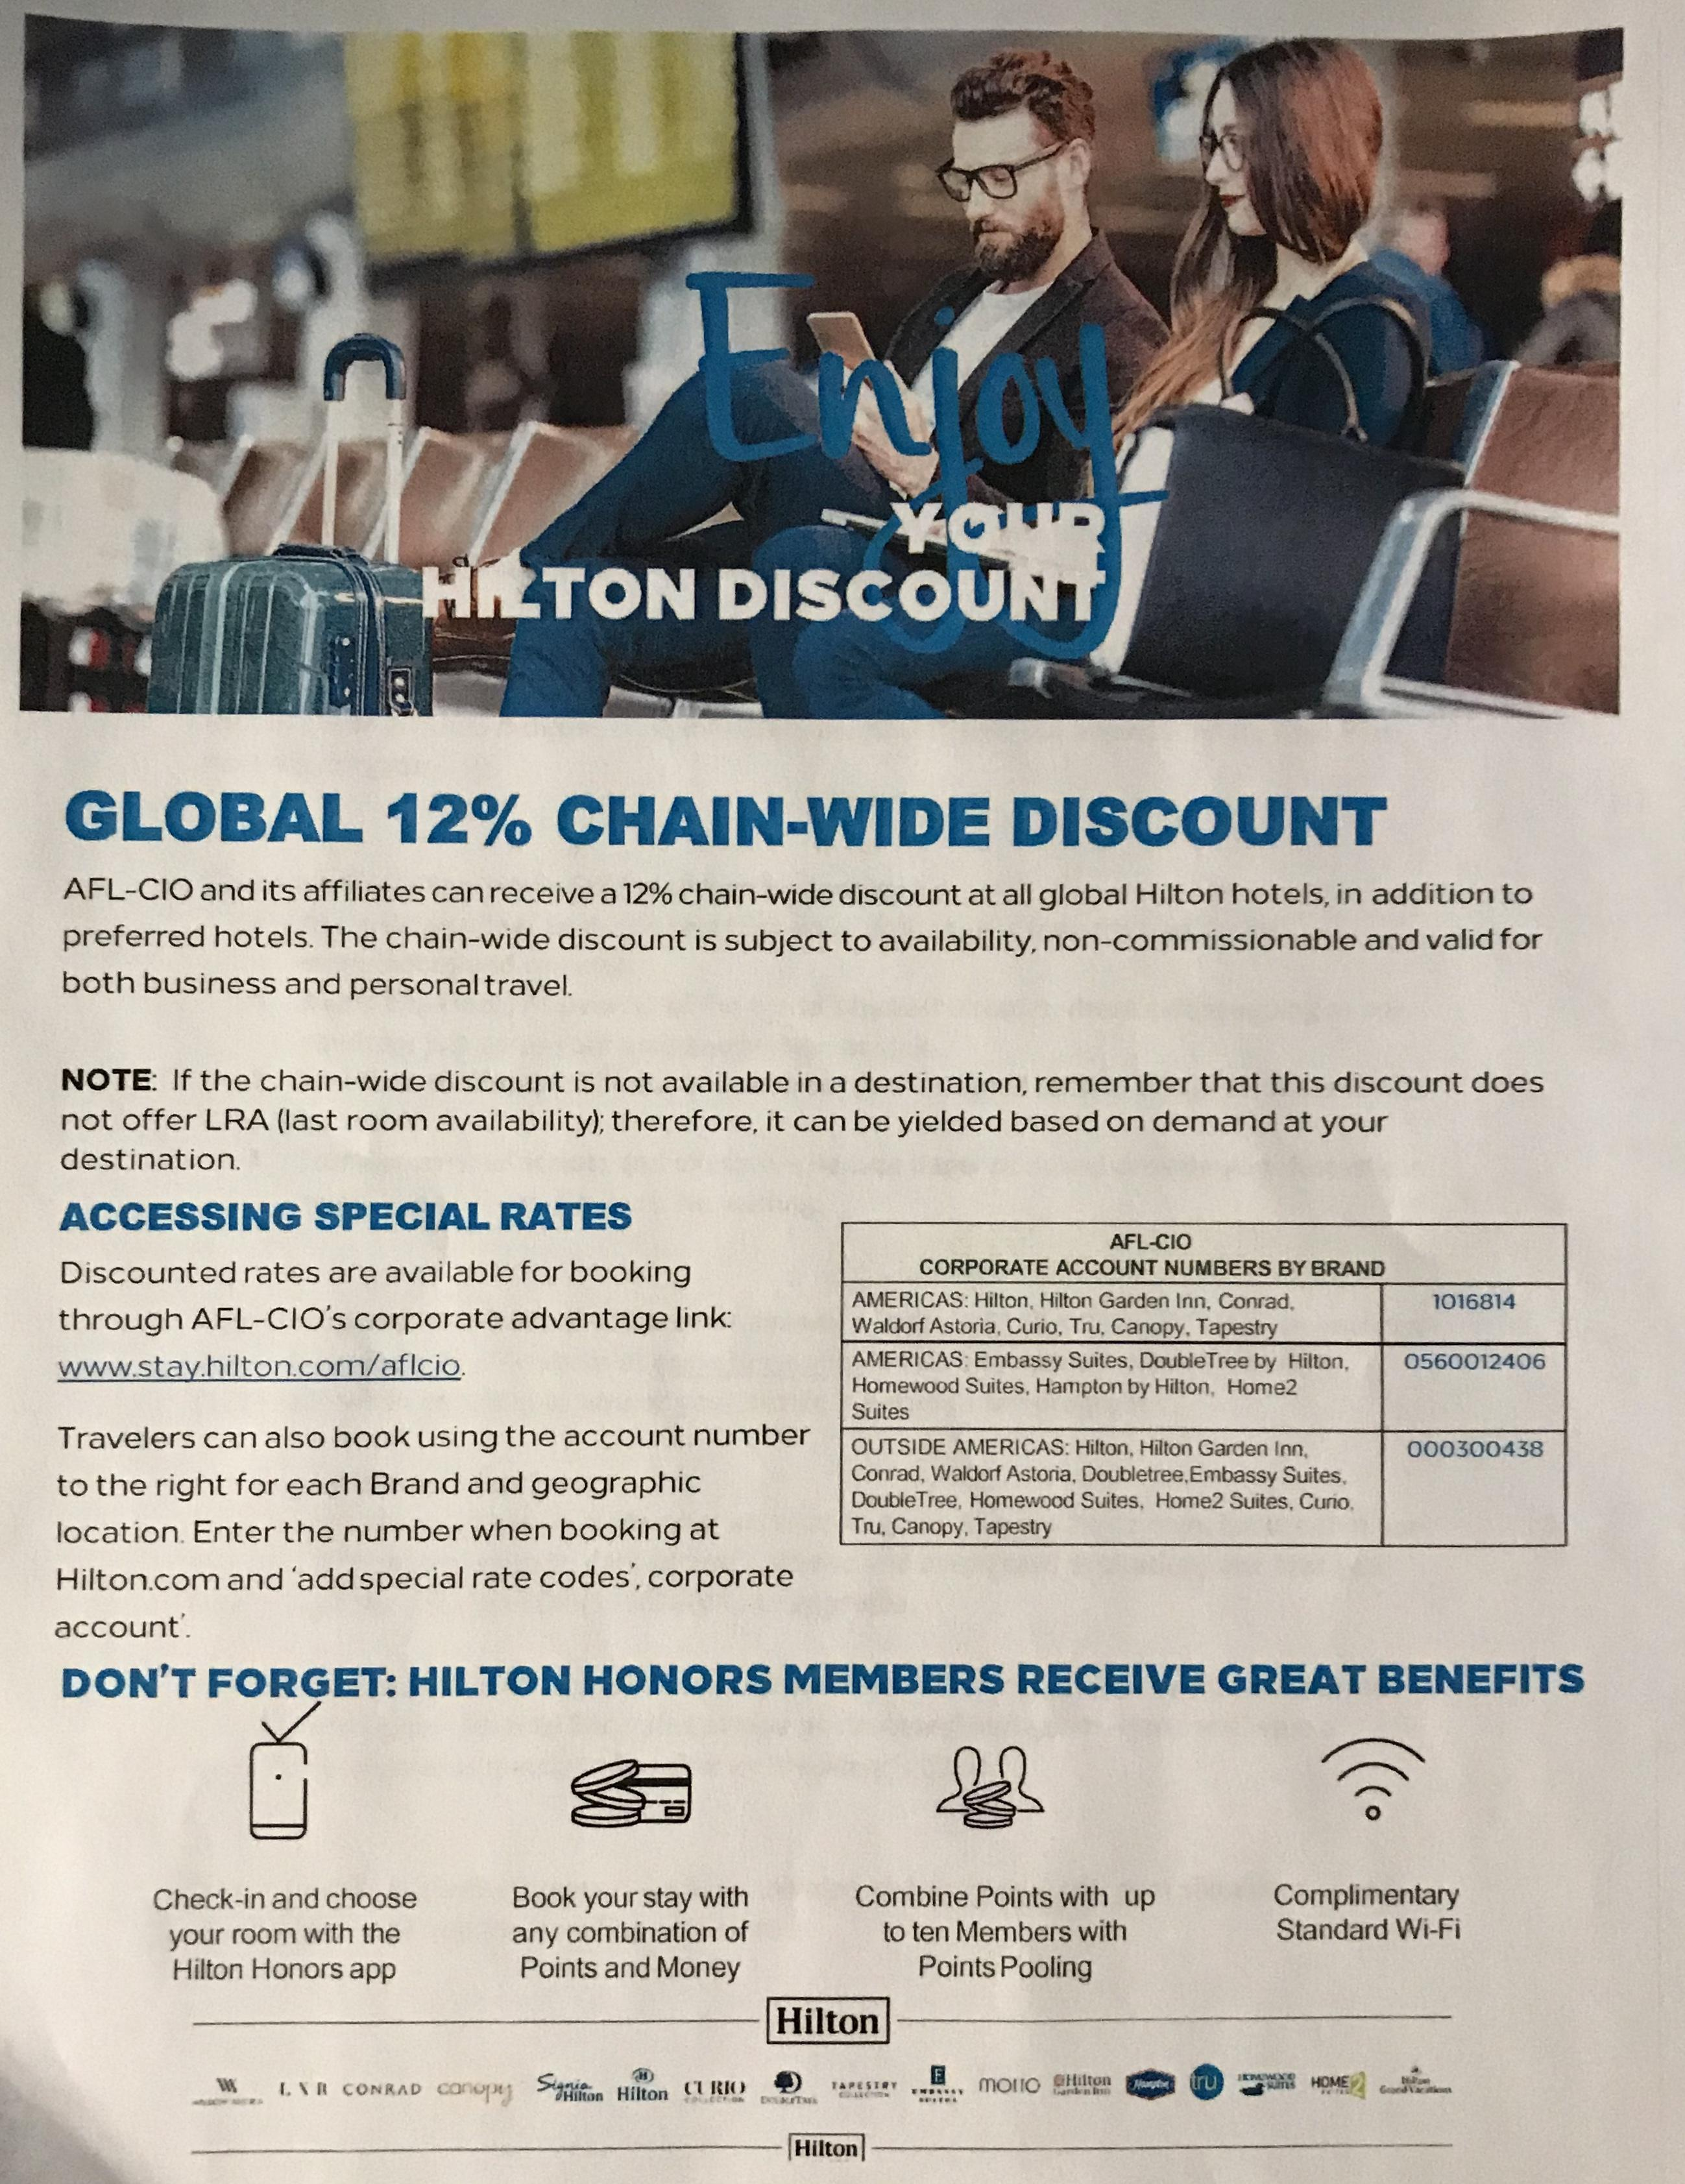 Hilton Discounts for union members